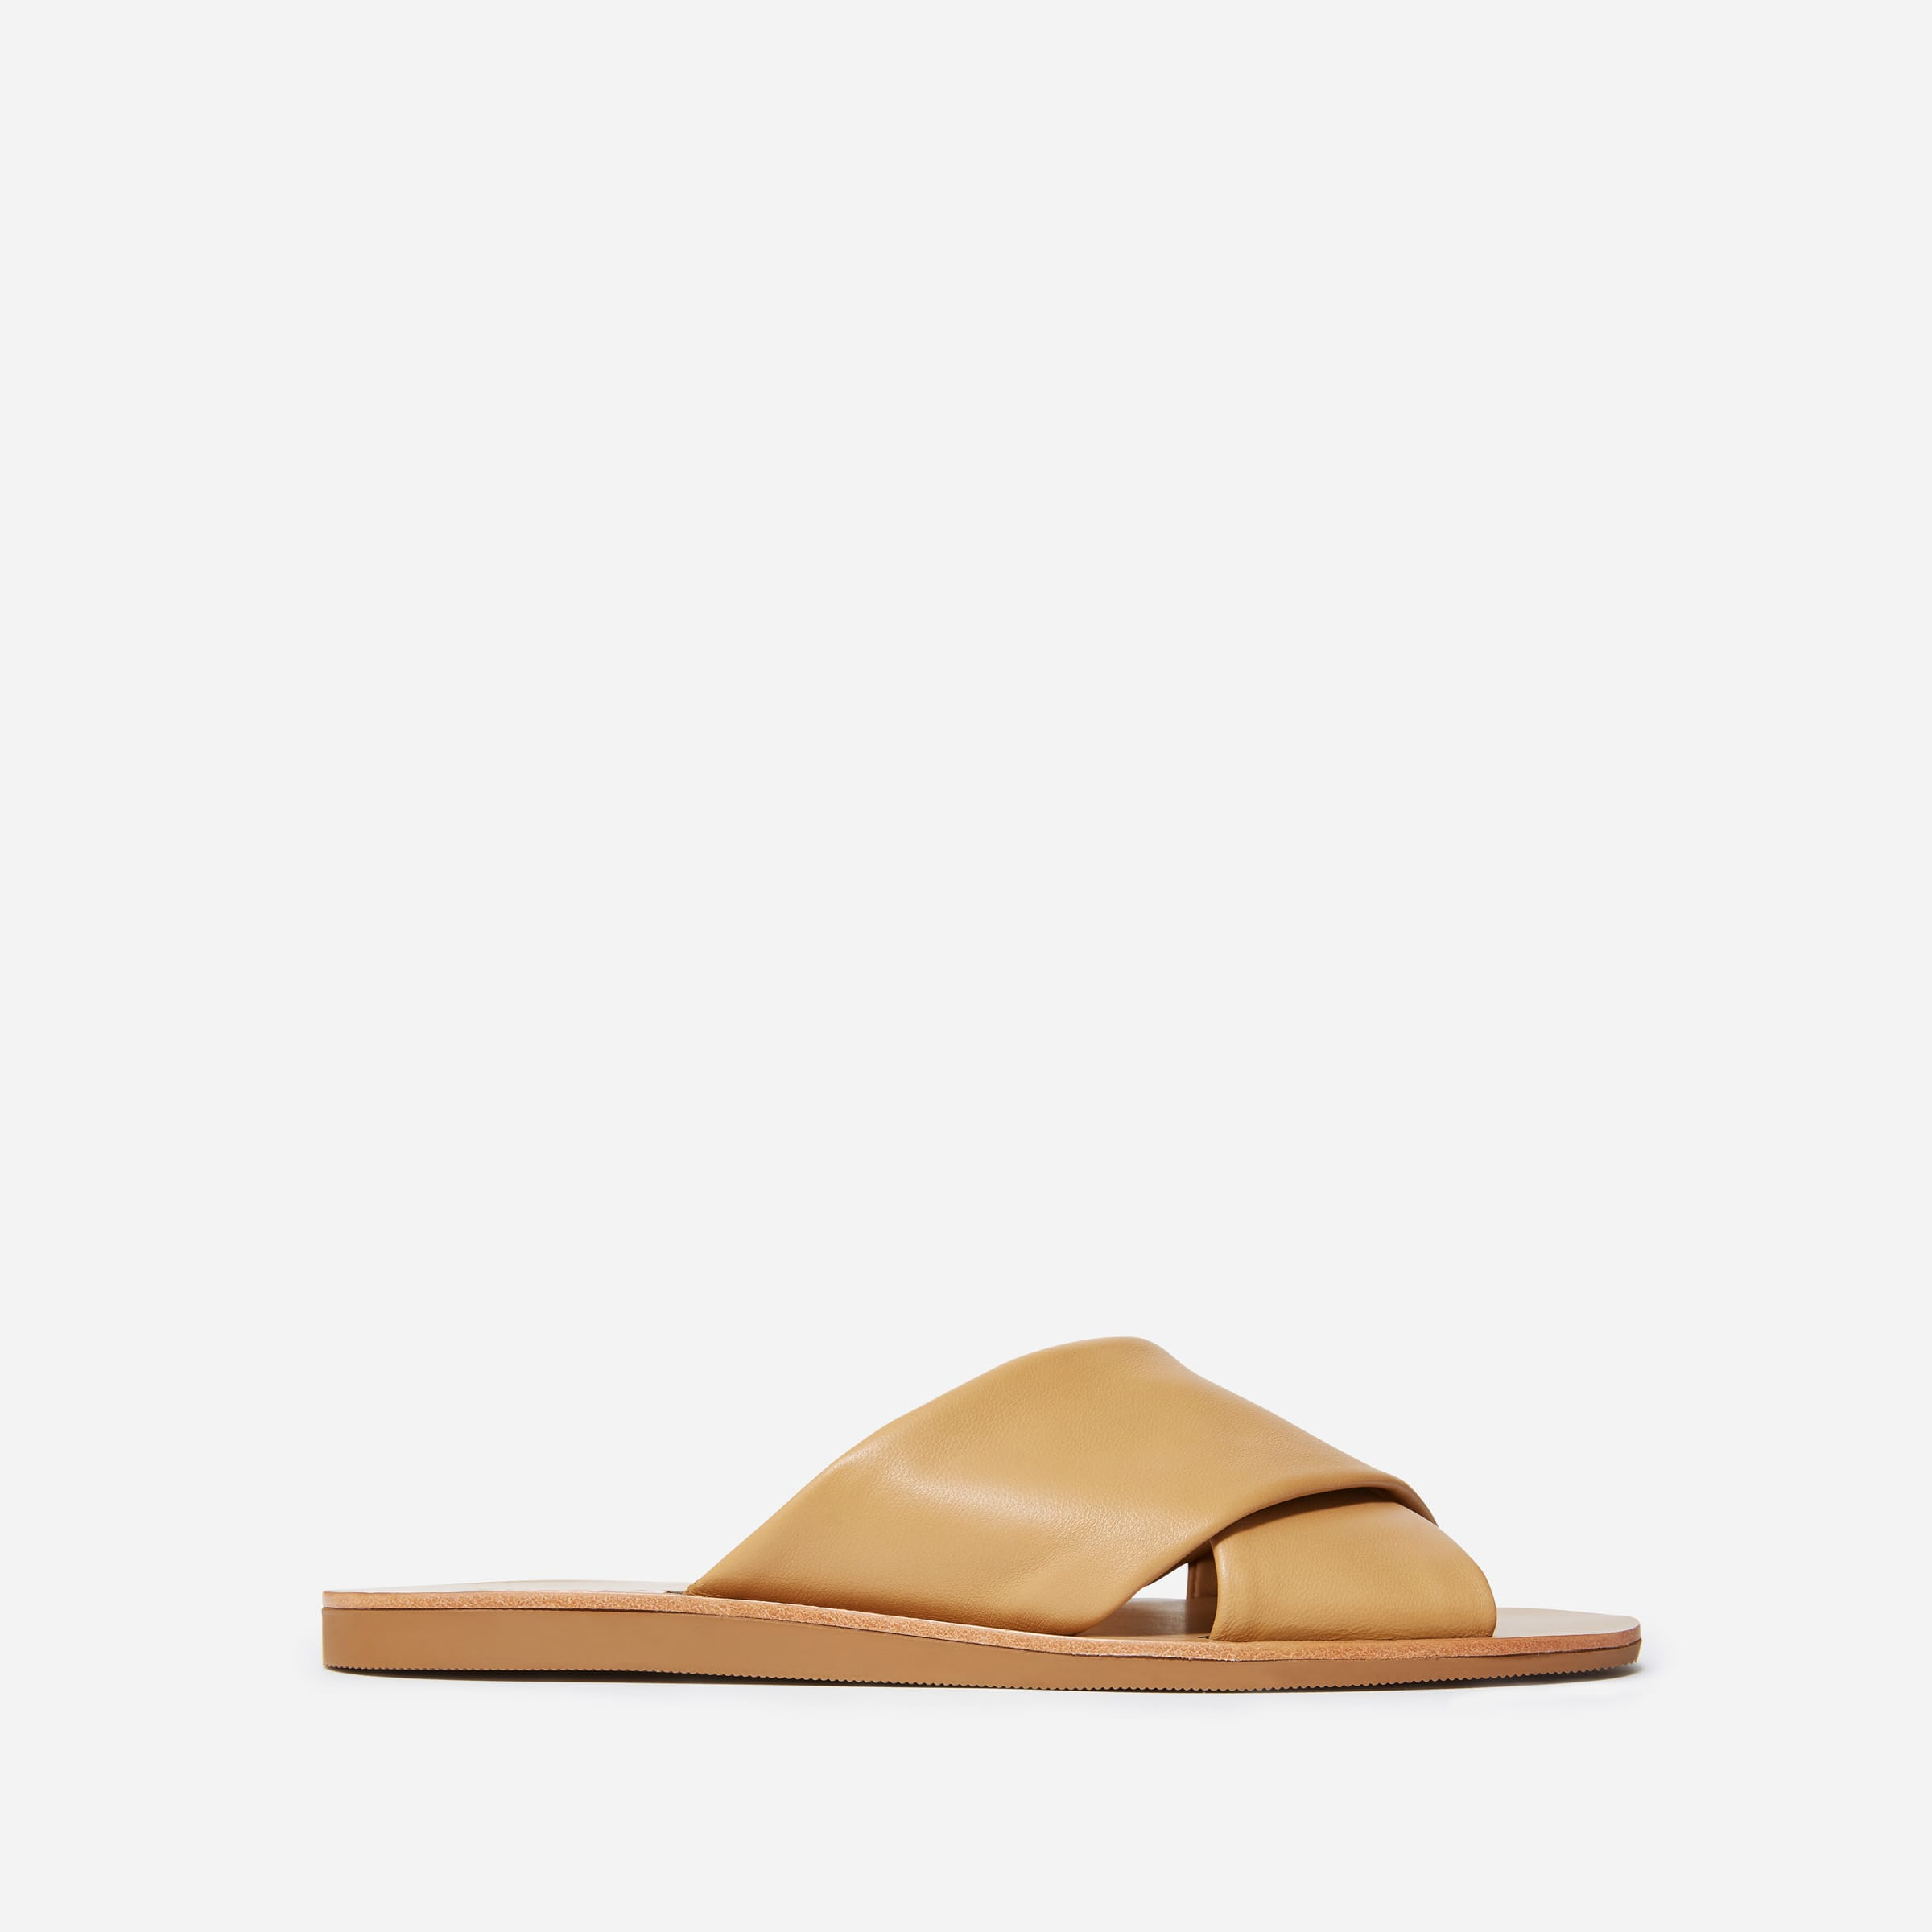 The Day Crossover Sandal   Everlane